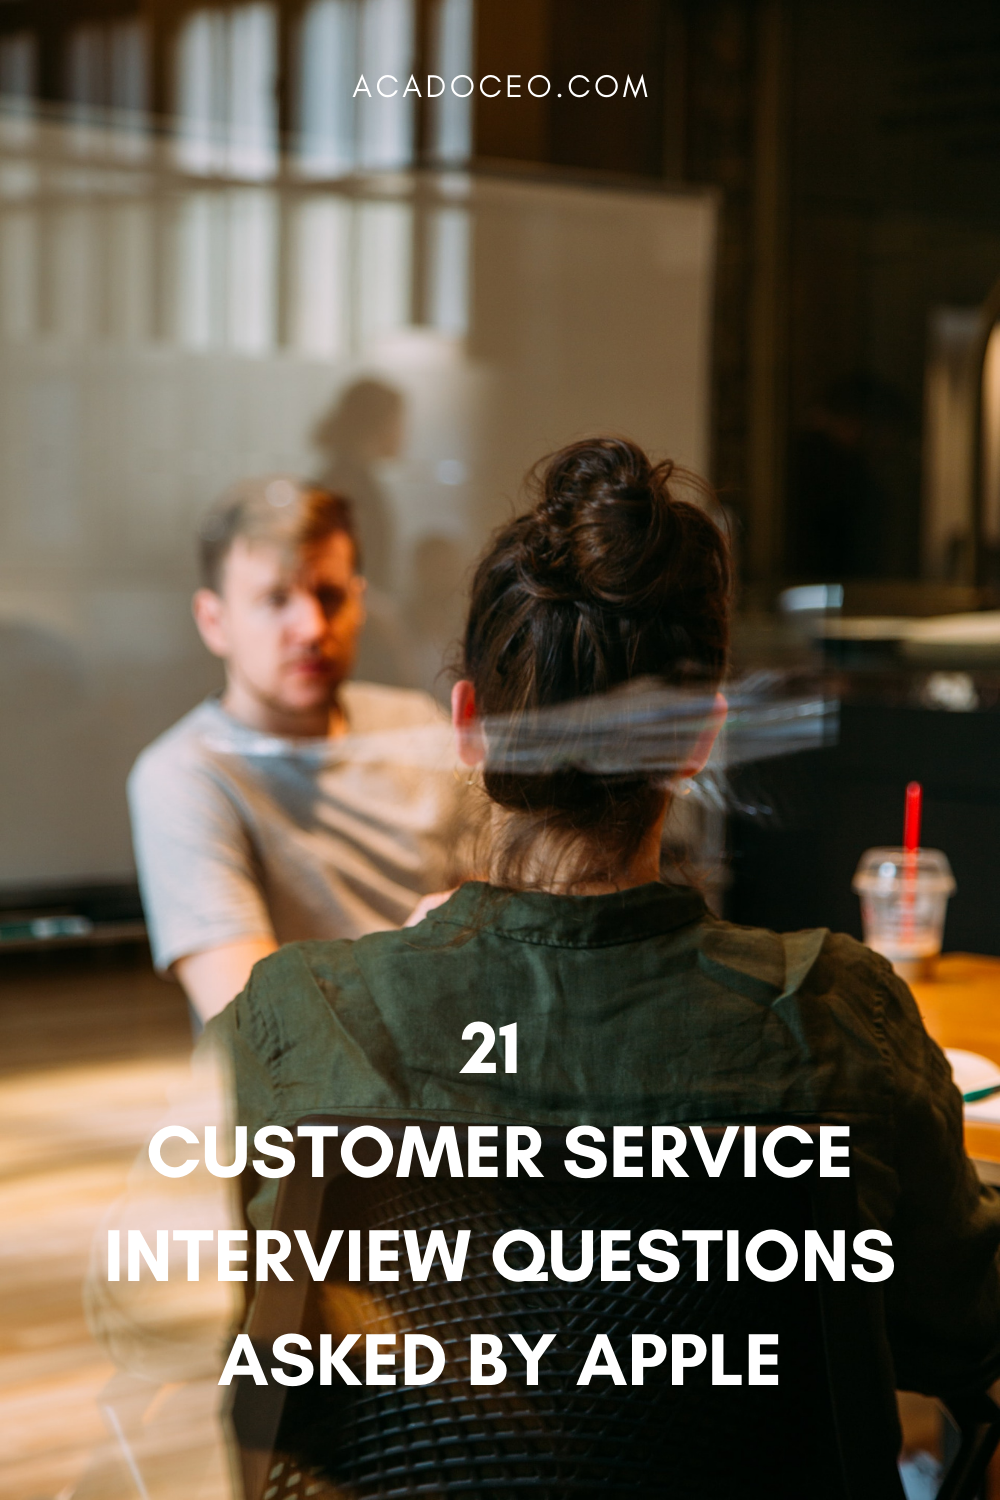 21 CUSTOMER SERVICE INTERVIEW QUESTIONS ASKED BY APPLE